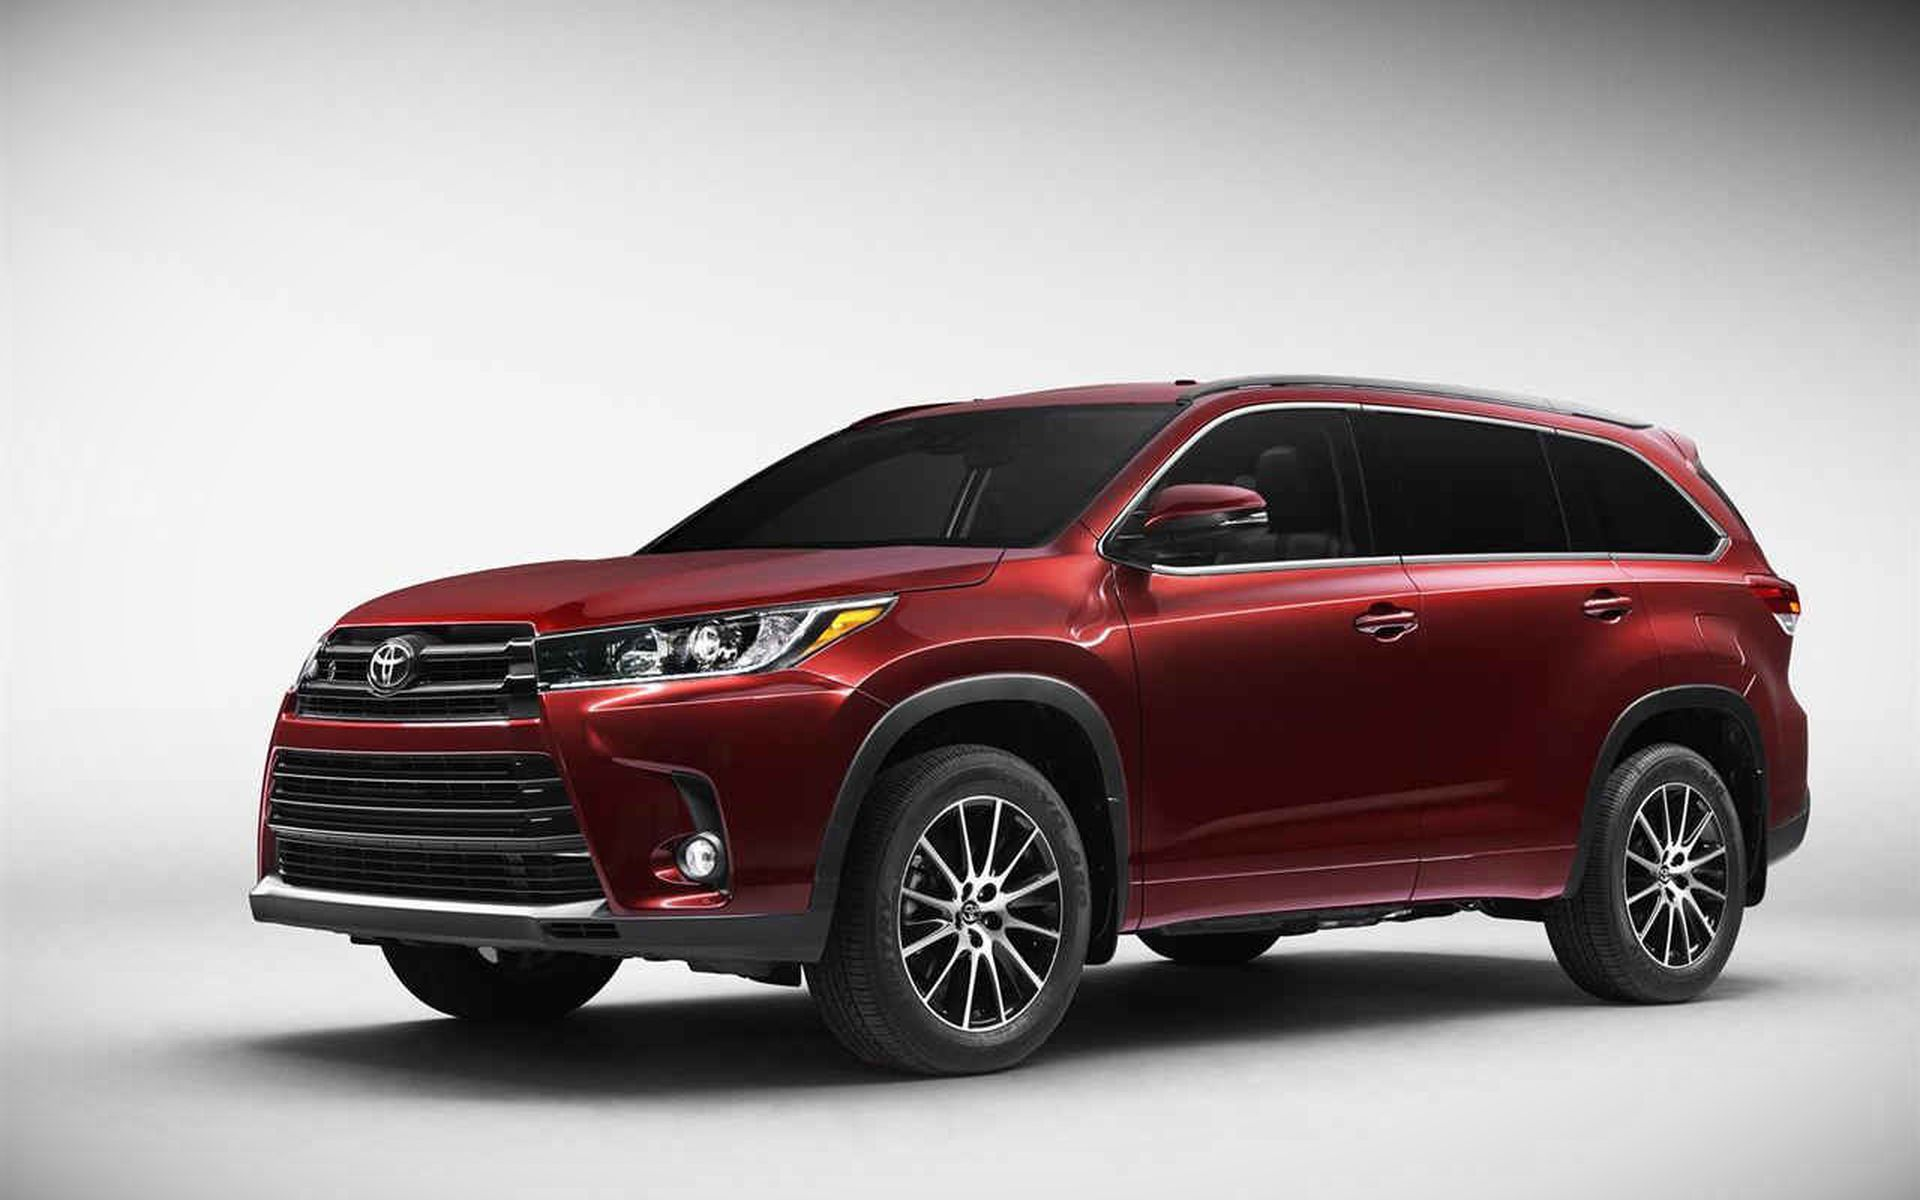 New Toyota Highlander - Best 6 Passenger SUVs 2020